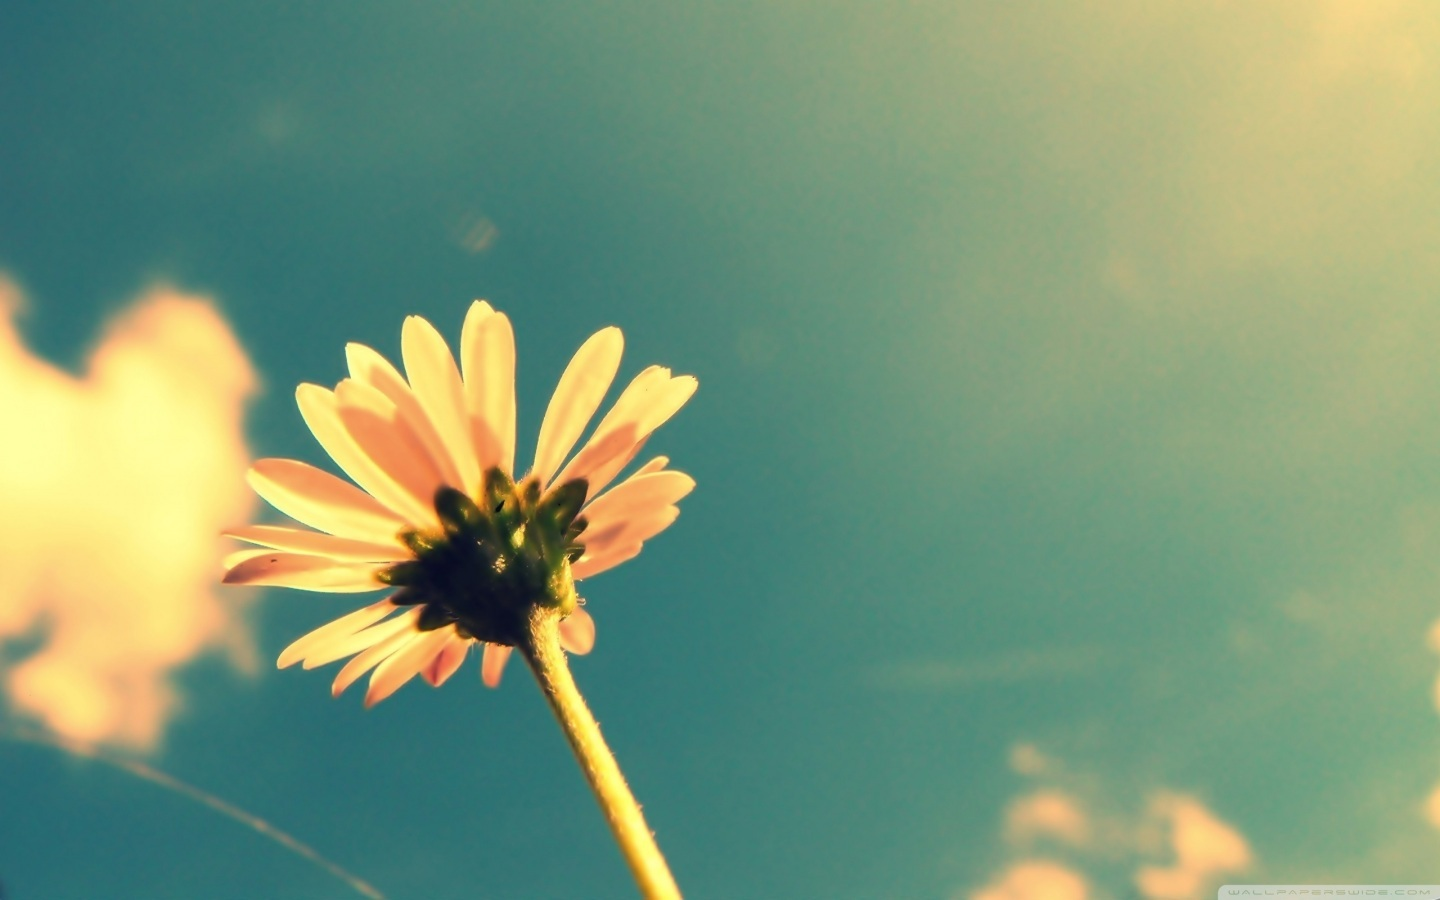 Cute Summer Flower Wallpaper Summer Tumblr Photography Photo Shared By 1440x900